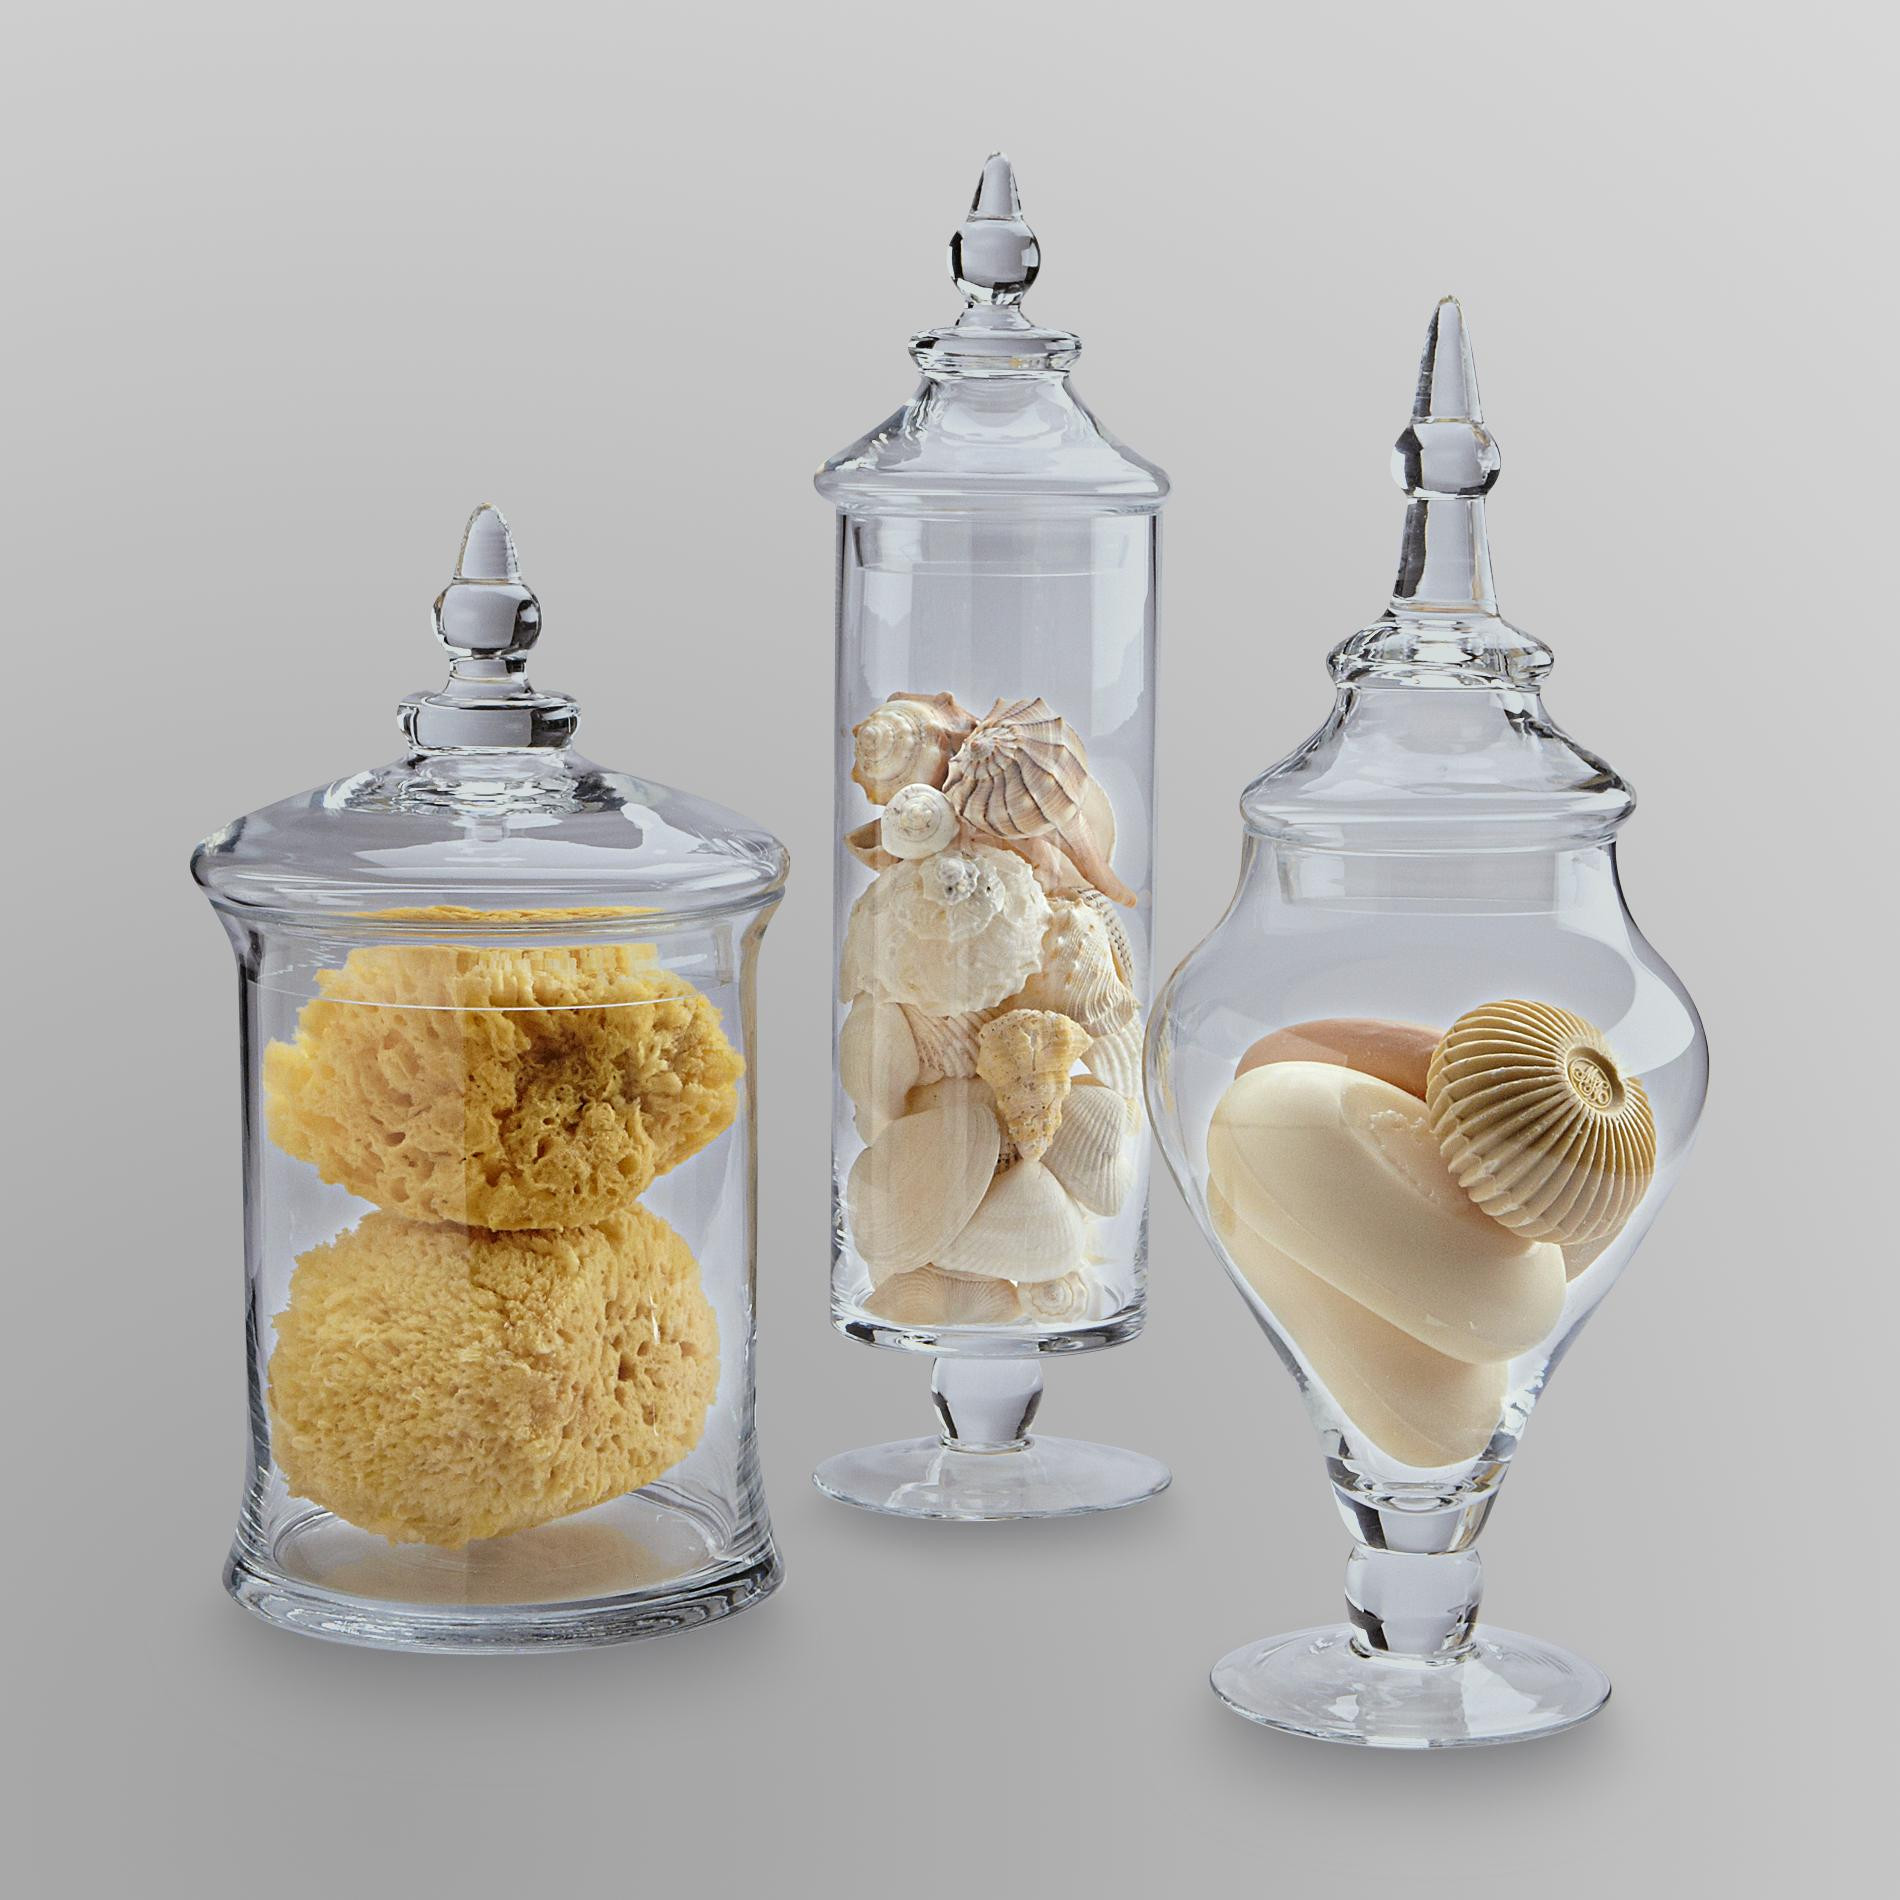 candy buffet vases jars of candy buffet glass jars glass decorating ideas in kmart essential home 3 piece glass apothecary jars only 23 99 reg